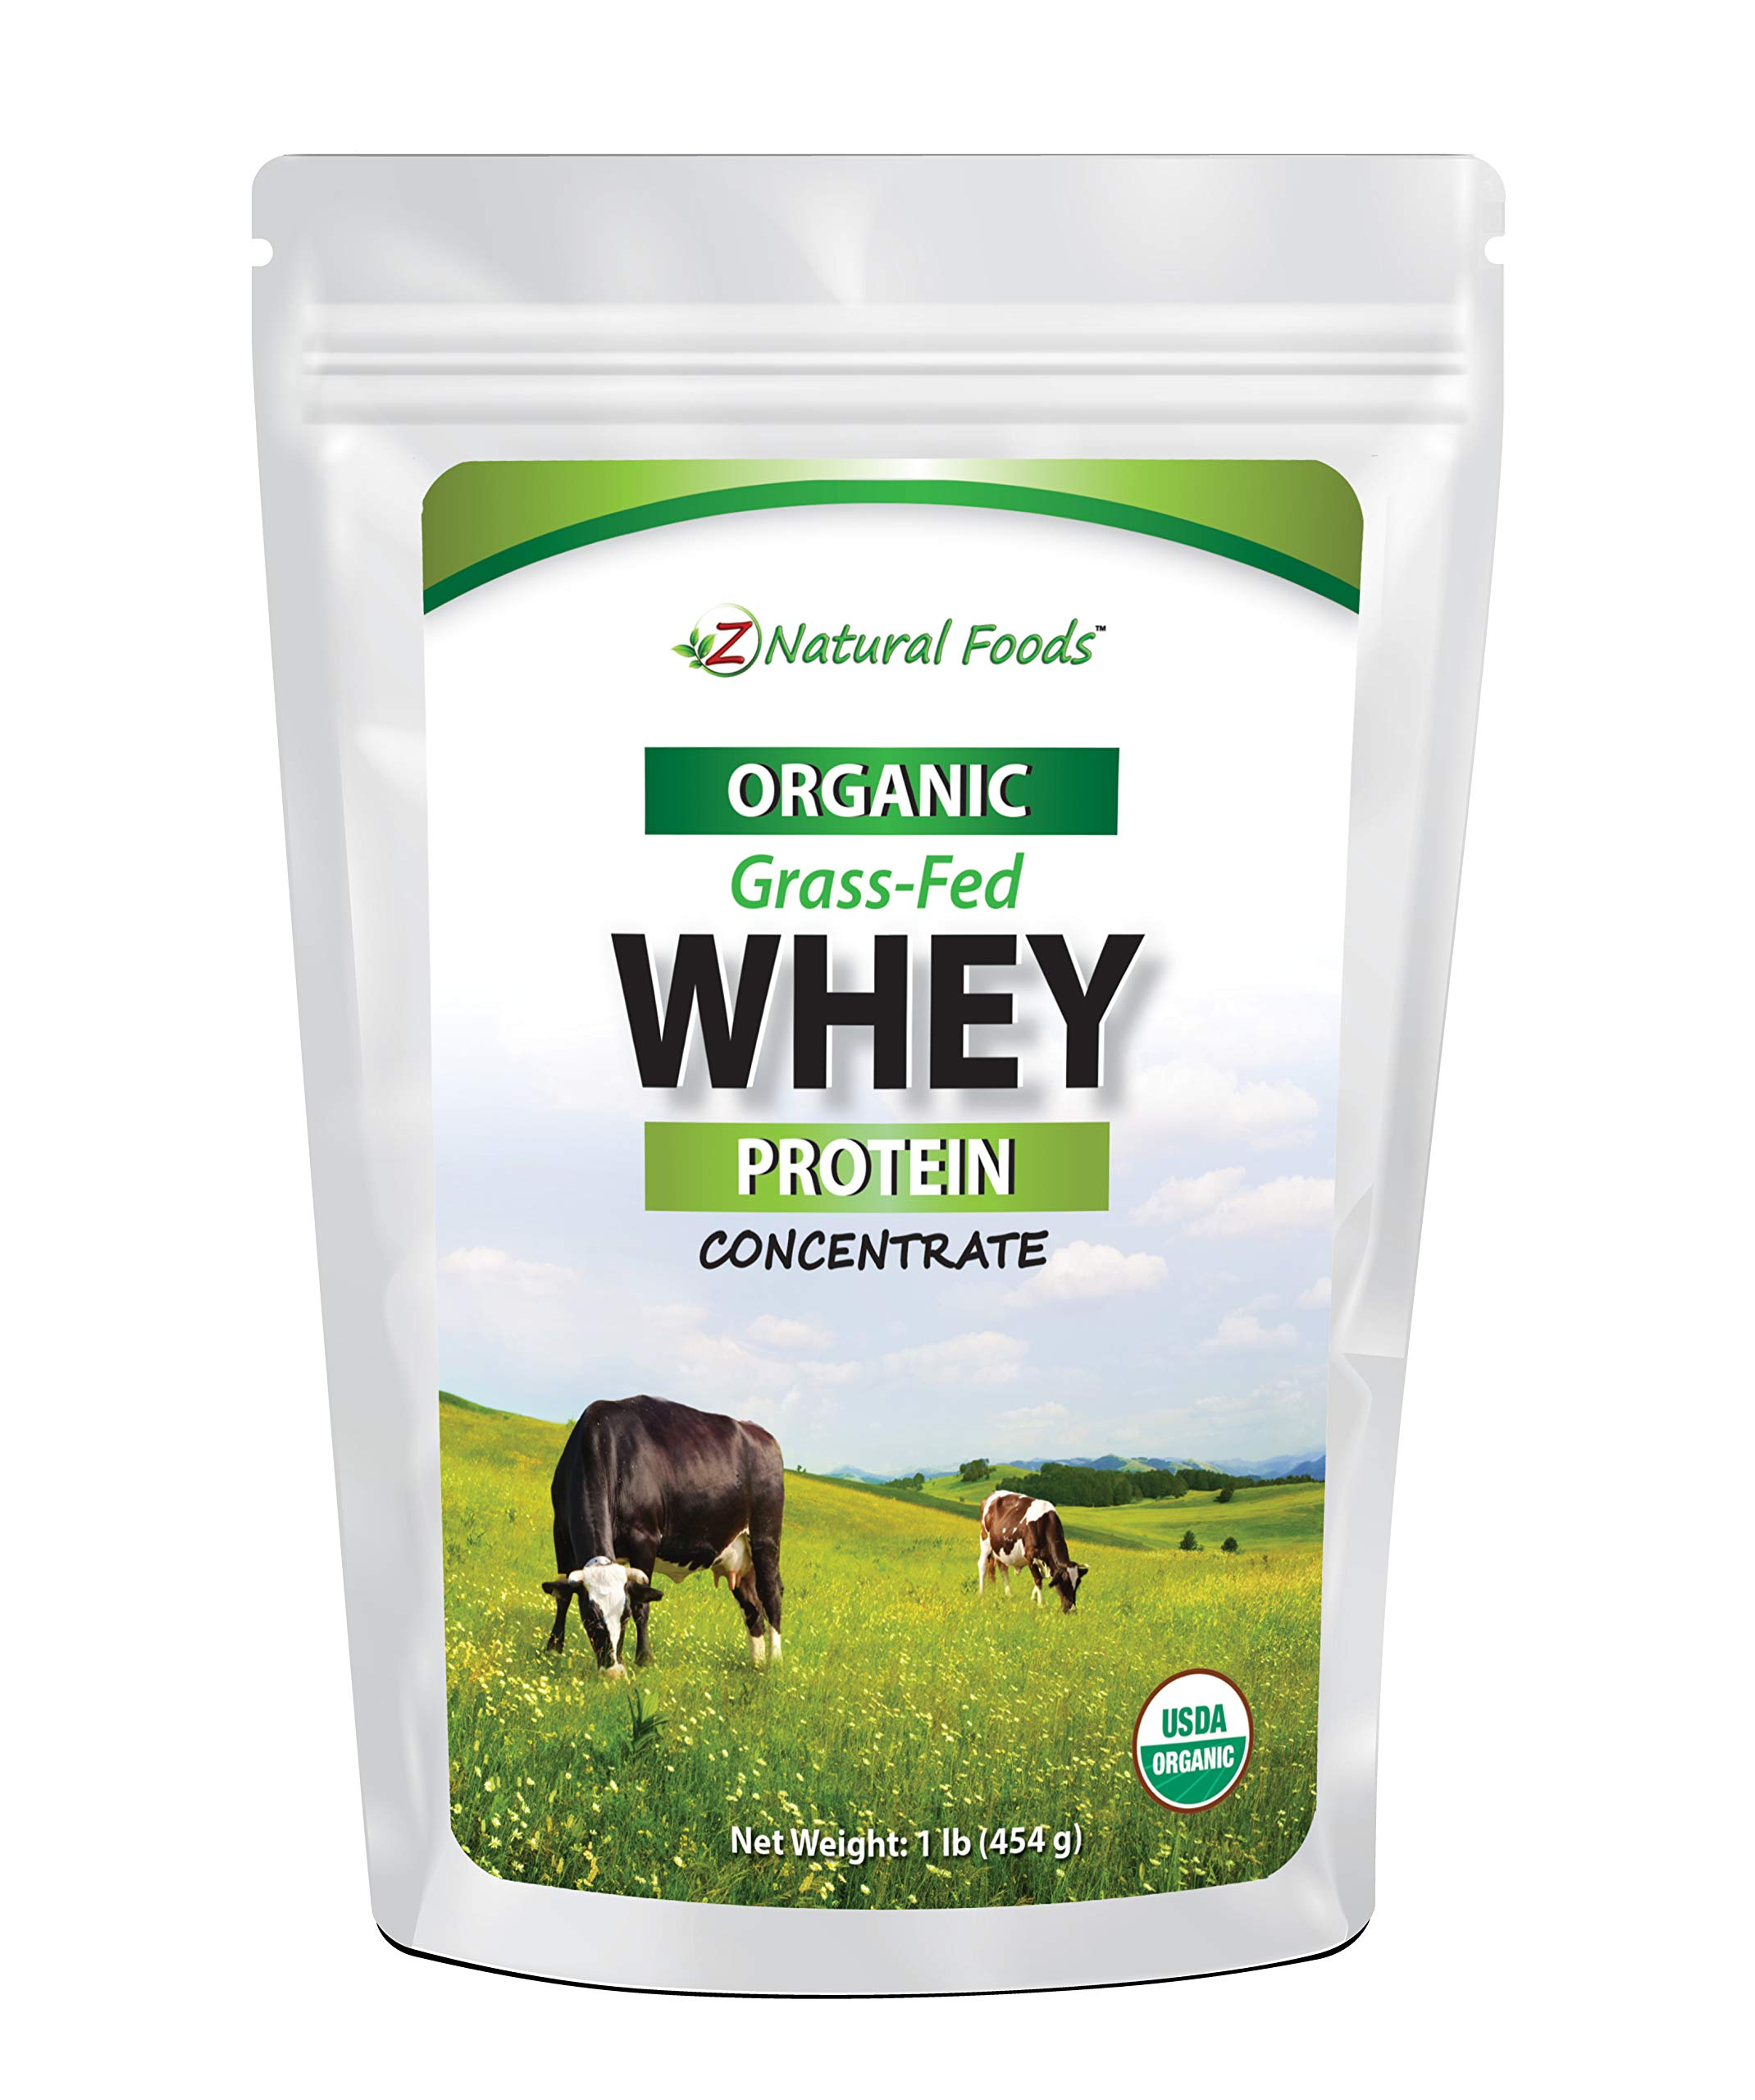 Organic Whey Protein Powder - 1 lb - Grass Fed, Unflavored, Hormone Free, Non GMO, Gluten Free, Kosher - All Natural Whey Concentrate - Perfect for Keto & Paleo Drinks, Shakes, Smoothies, & Recipes